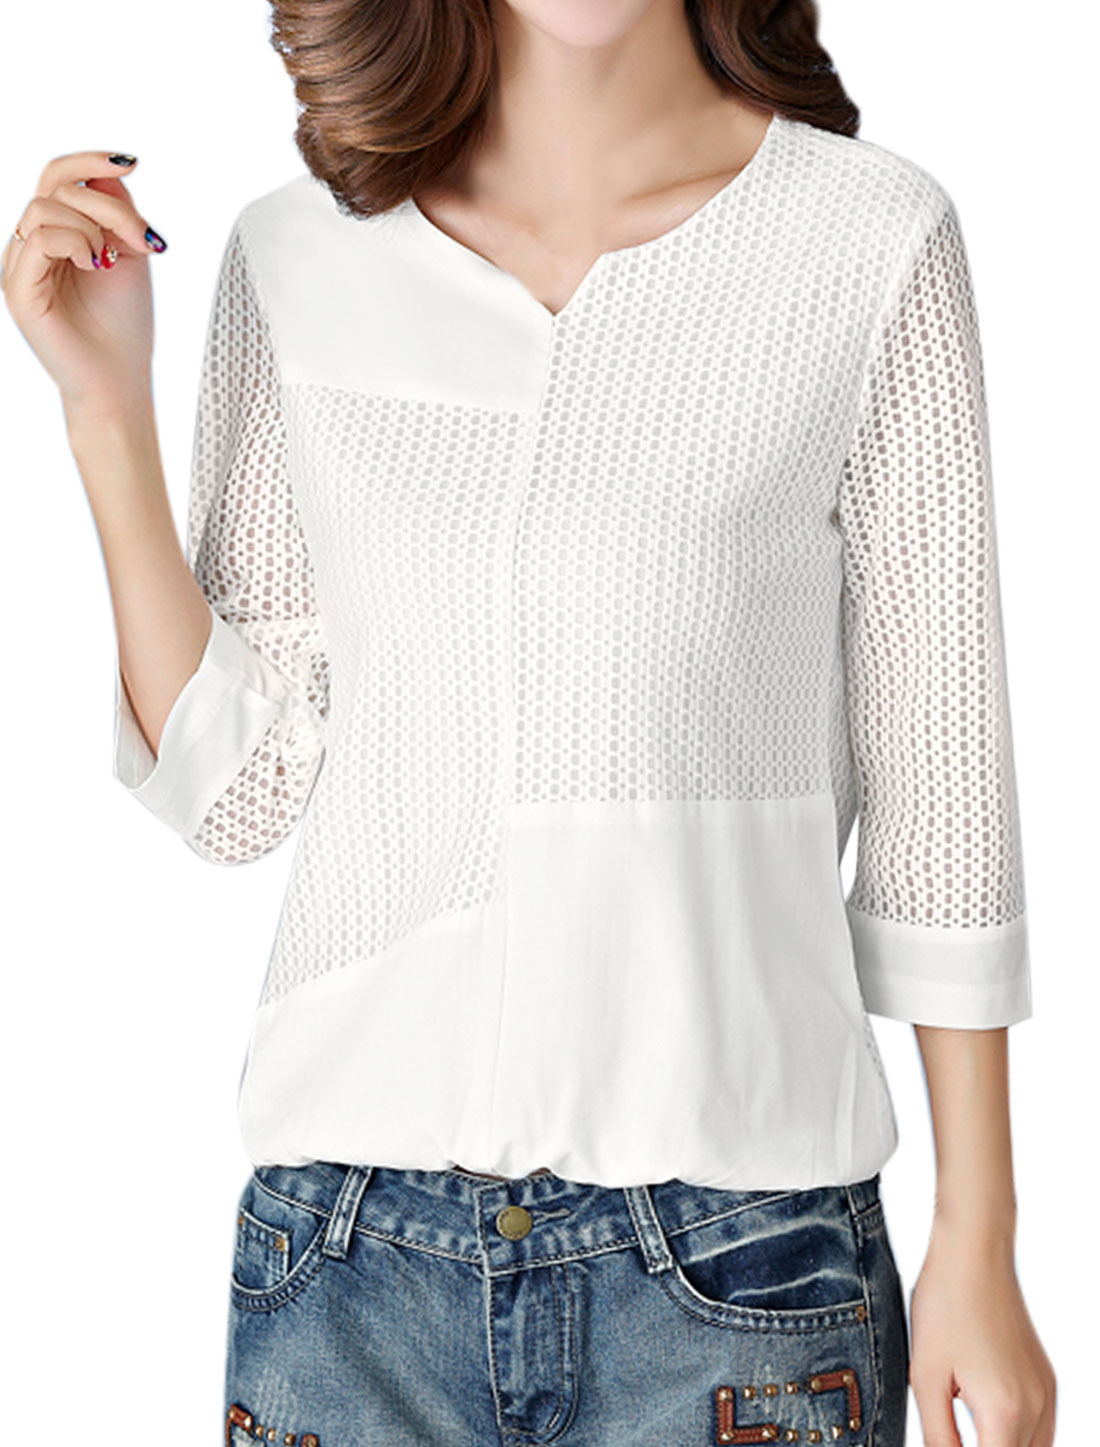 Women Split Neck 3/4 Sleeves Hollow Out Paneled Top White M